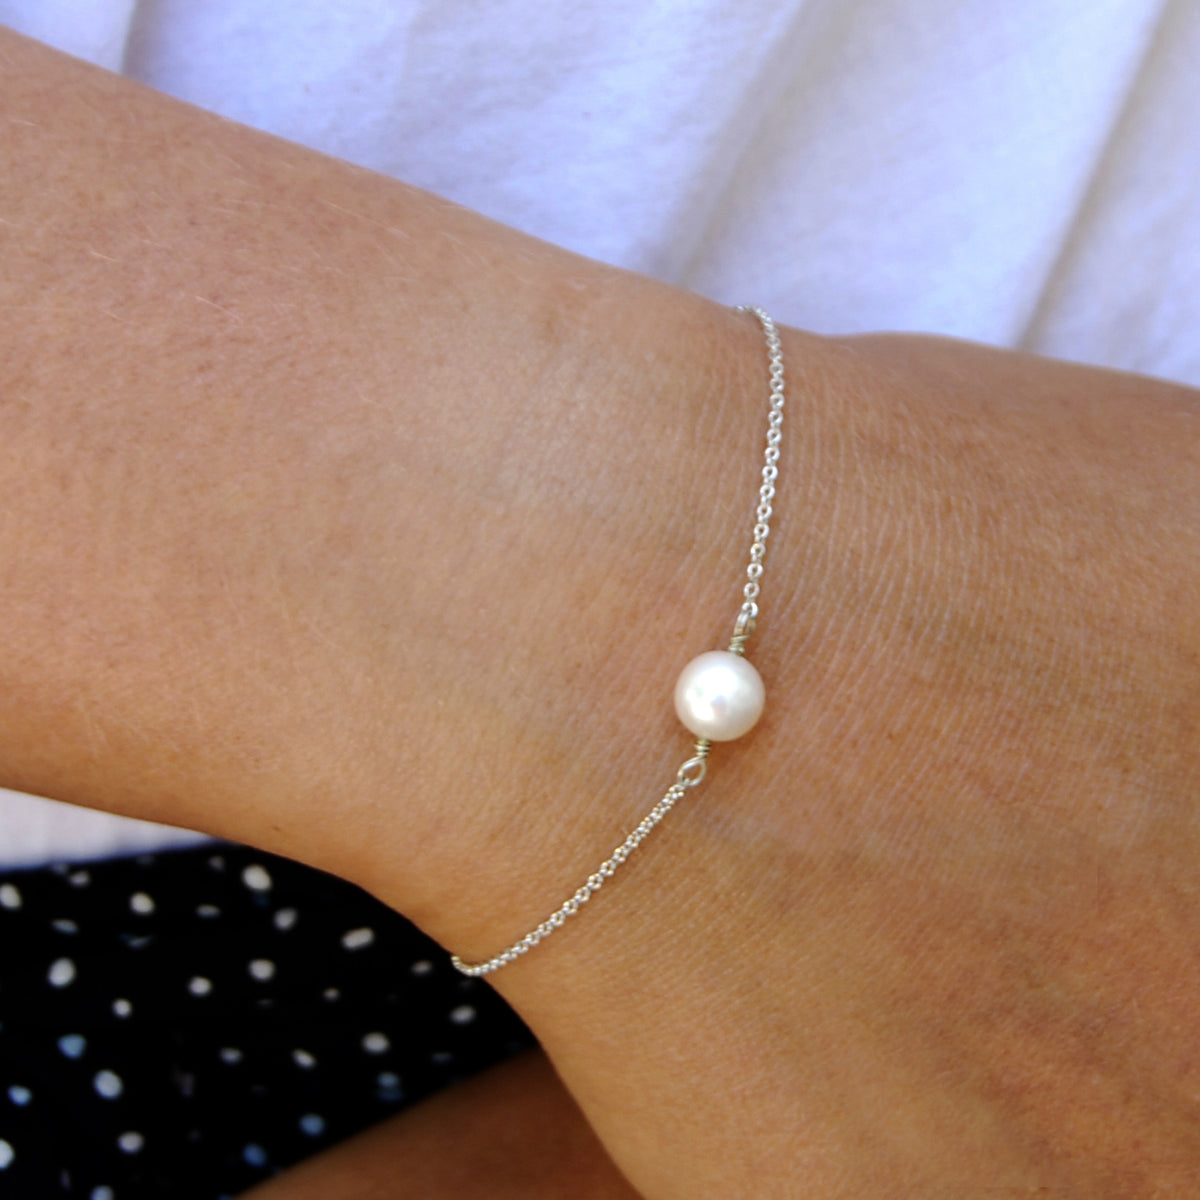 White Freshwater Pearl 'Simple' Chain Bracelet